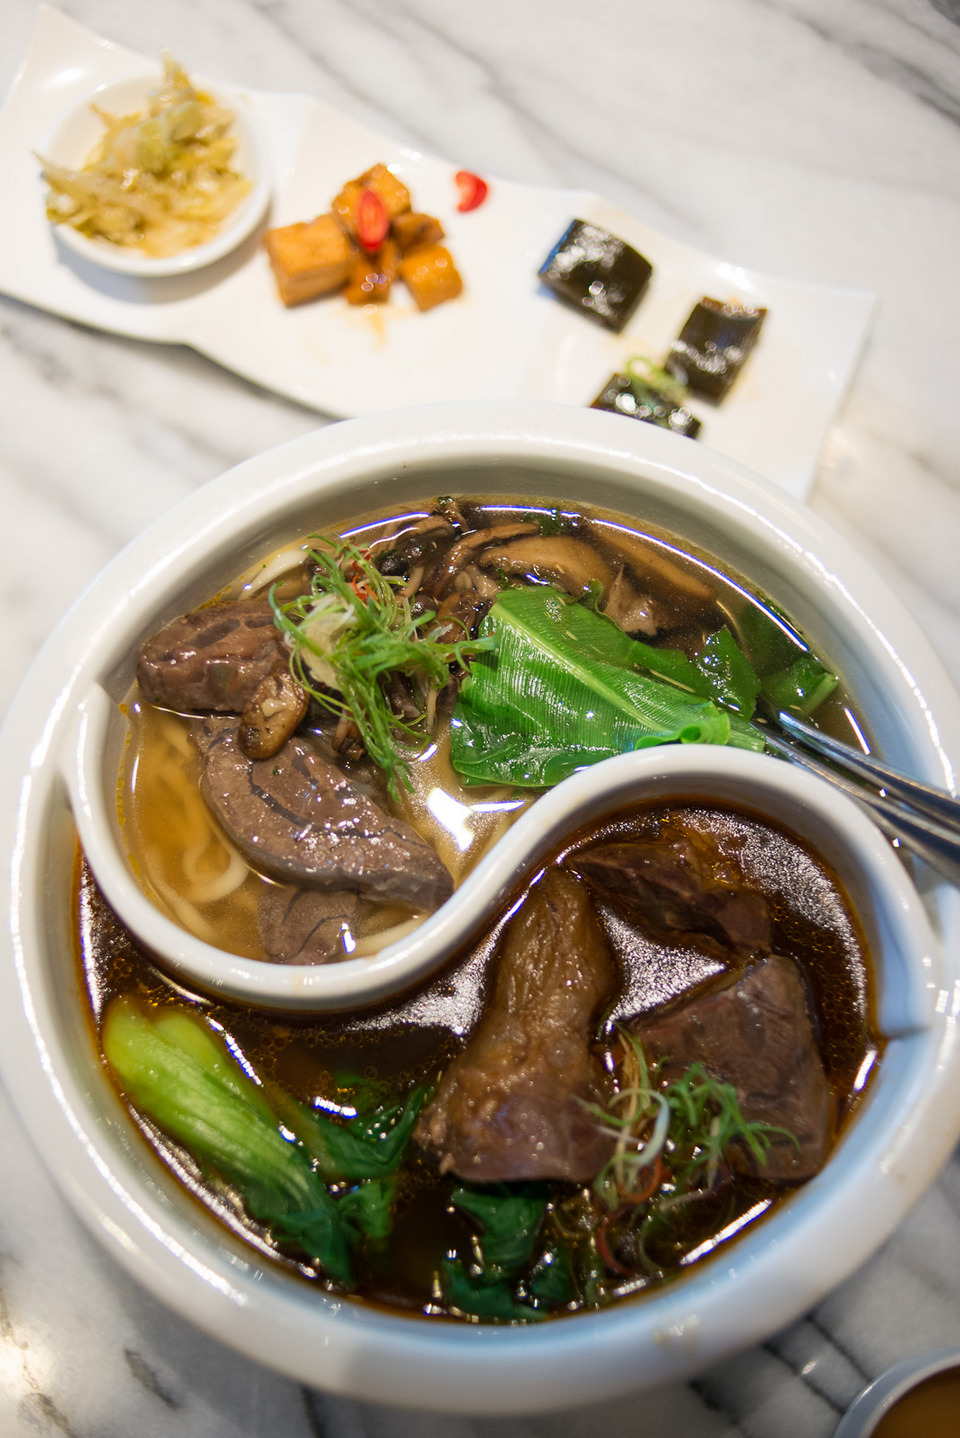 Silks palace beef noodles